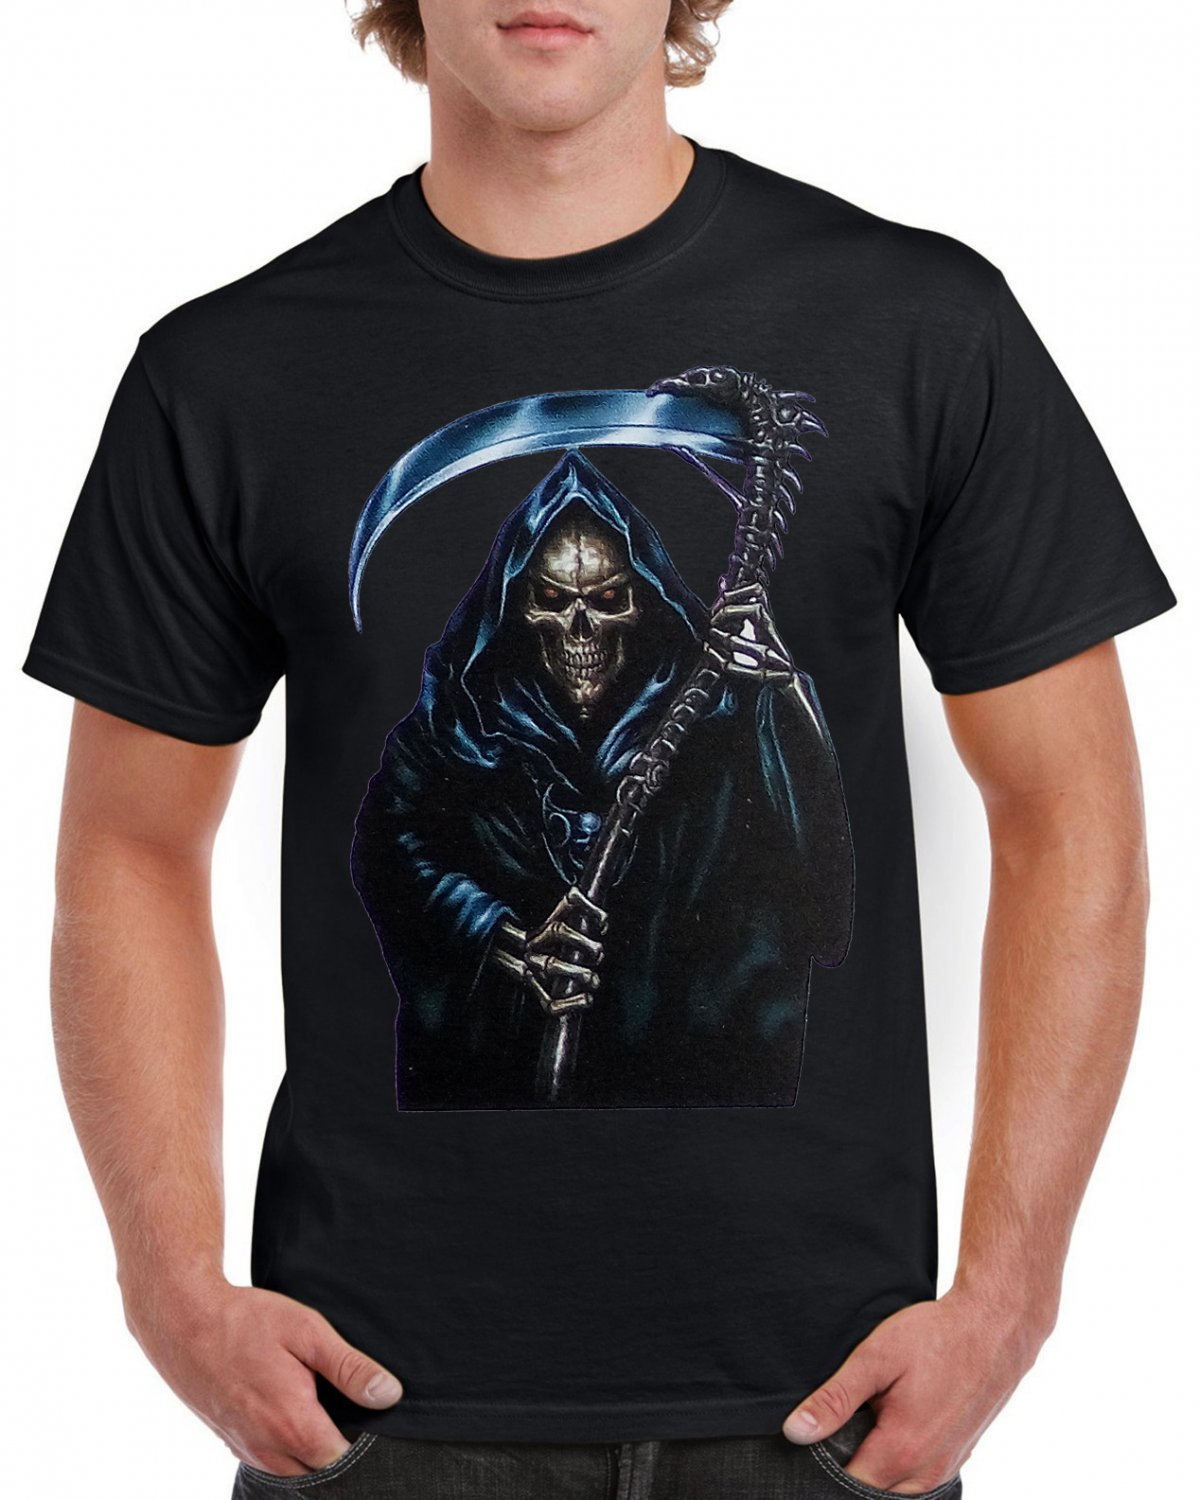 Gothik Sickle Mummy Snake T-shirt Heavy Metal Rock Tshirt Festival Top Tee